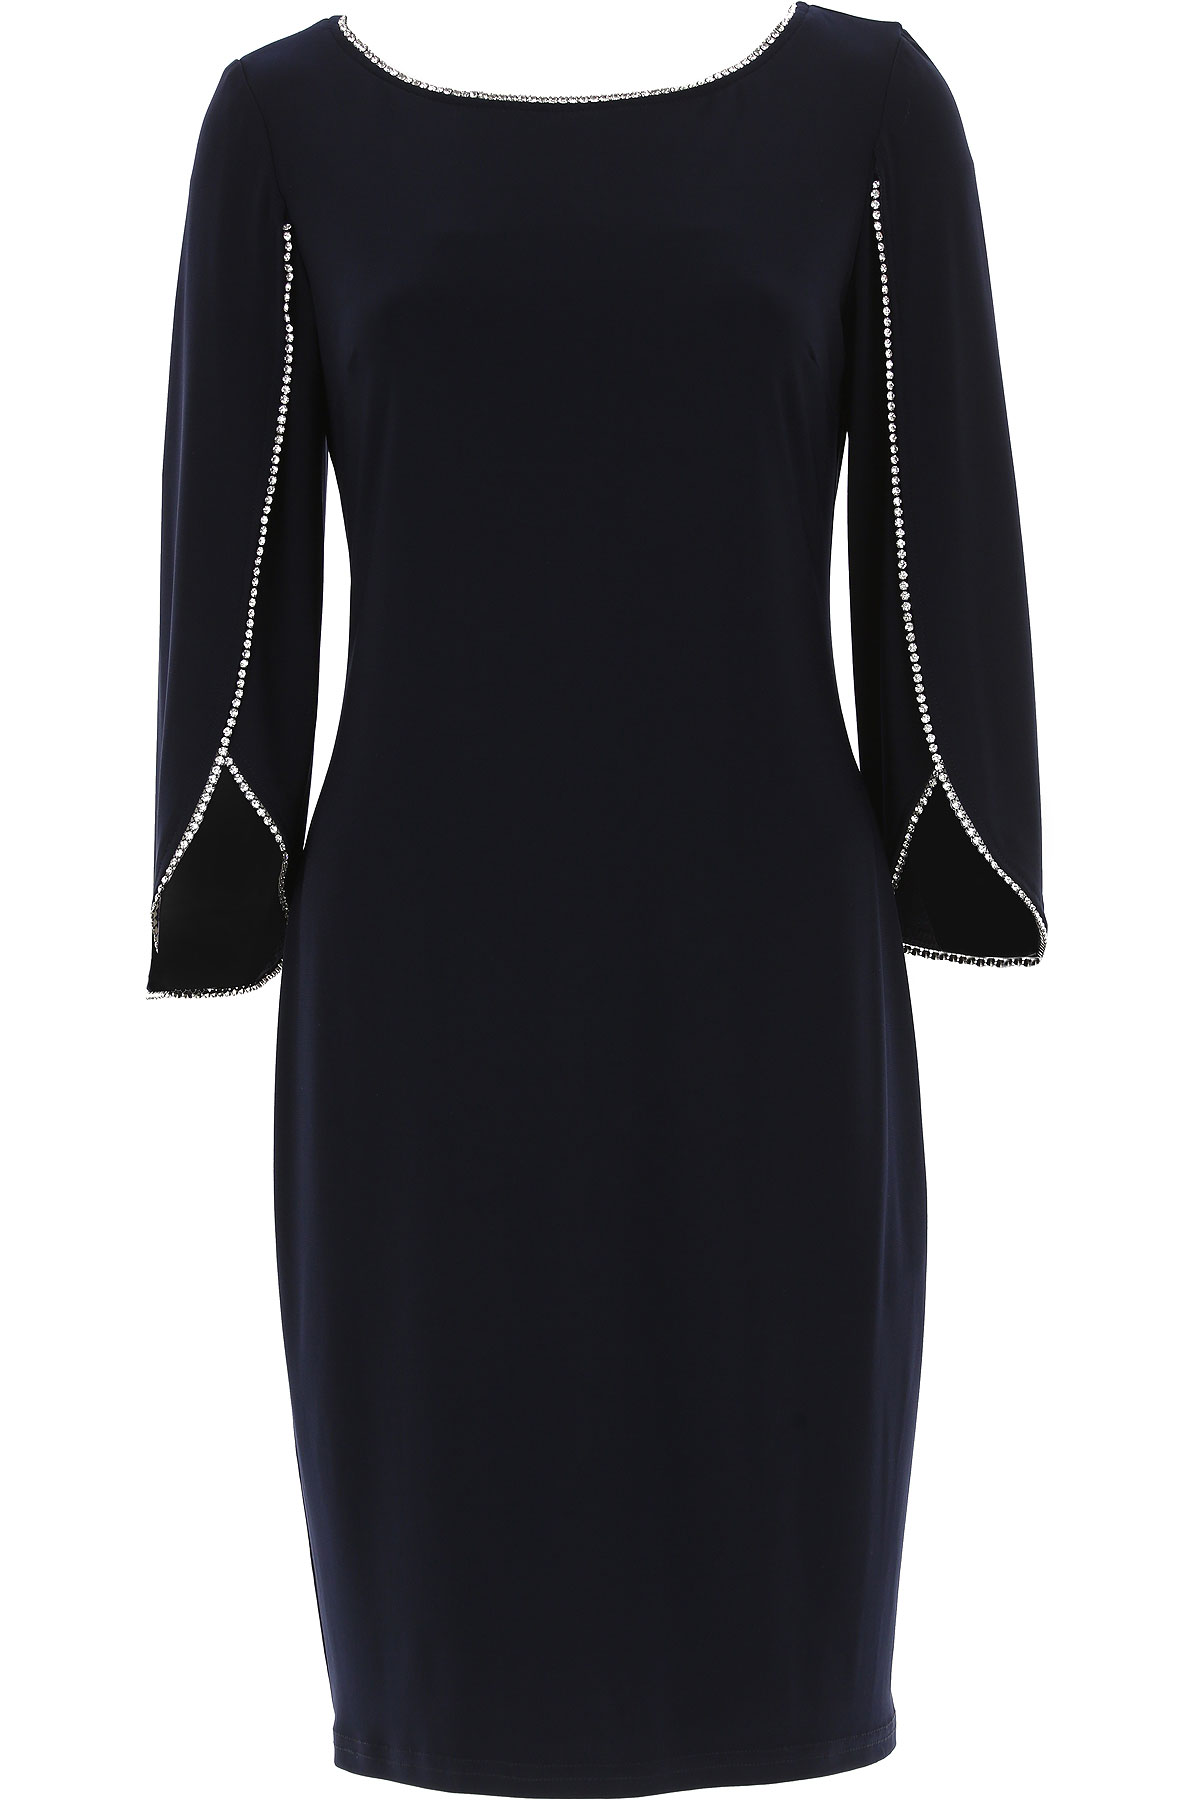 Image of Joseph Ribkoff Dress for Women, Evening Cocktail Party, Midnight, polyester, 2017, 10 6 8